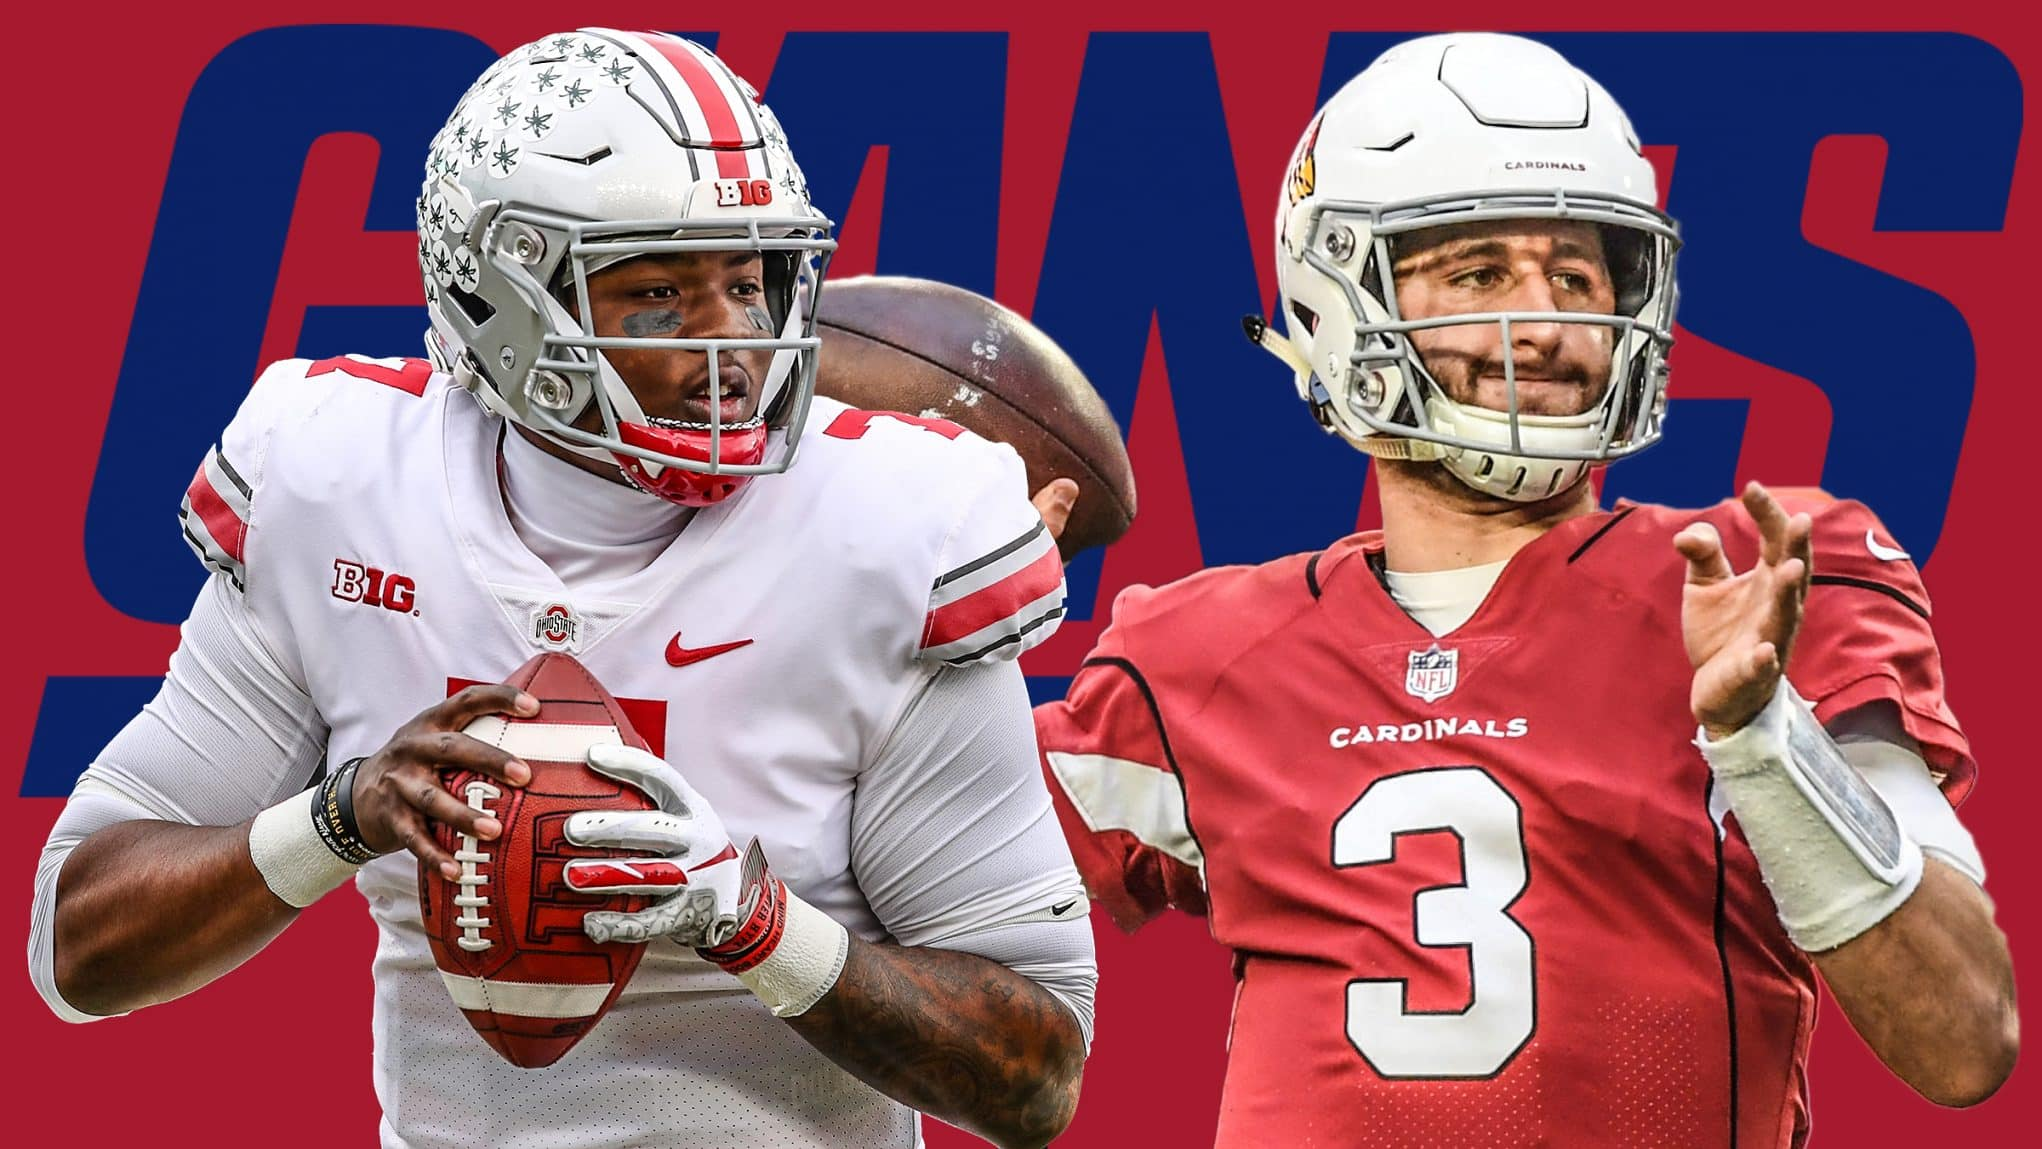 d34a1975 It's simple for the New York Giants: Draft Dwayne Haskins or acquire ...